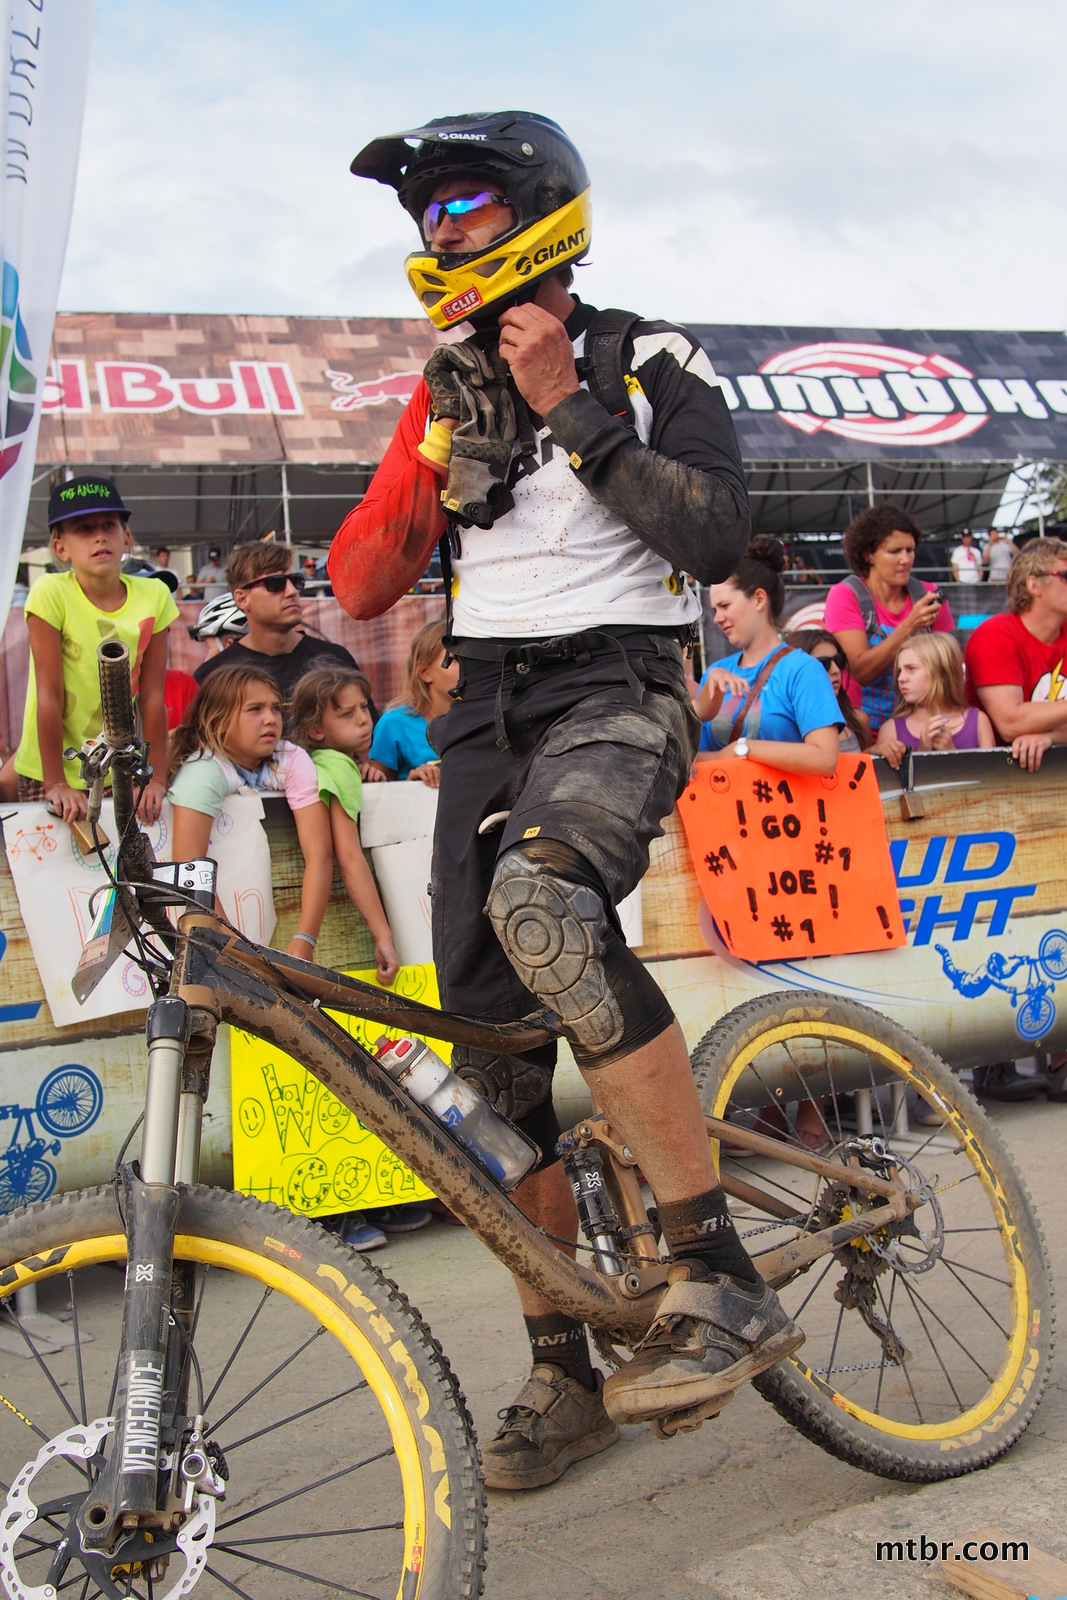 Jeff Lenosky in Enduro World Series Whistler